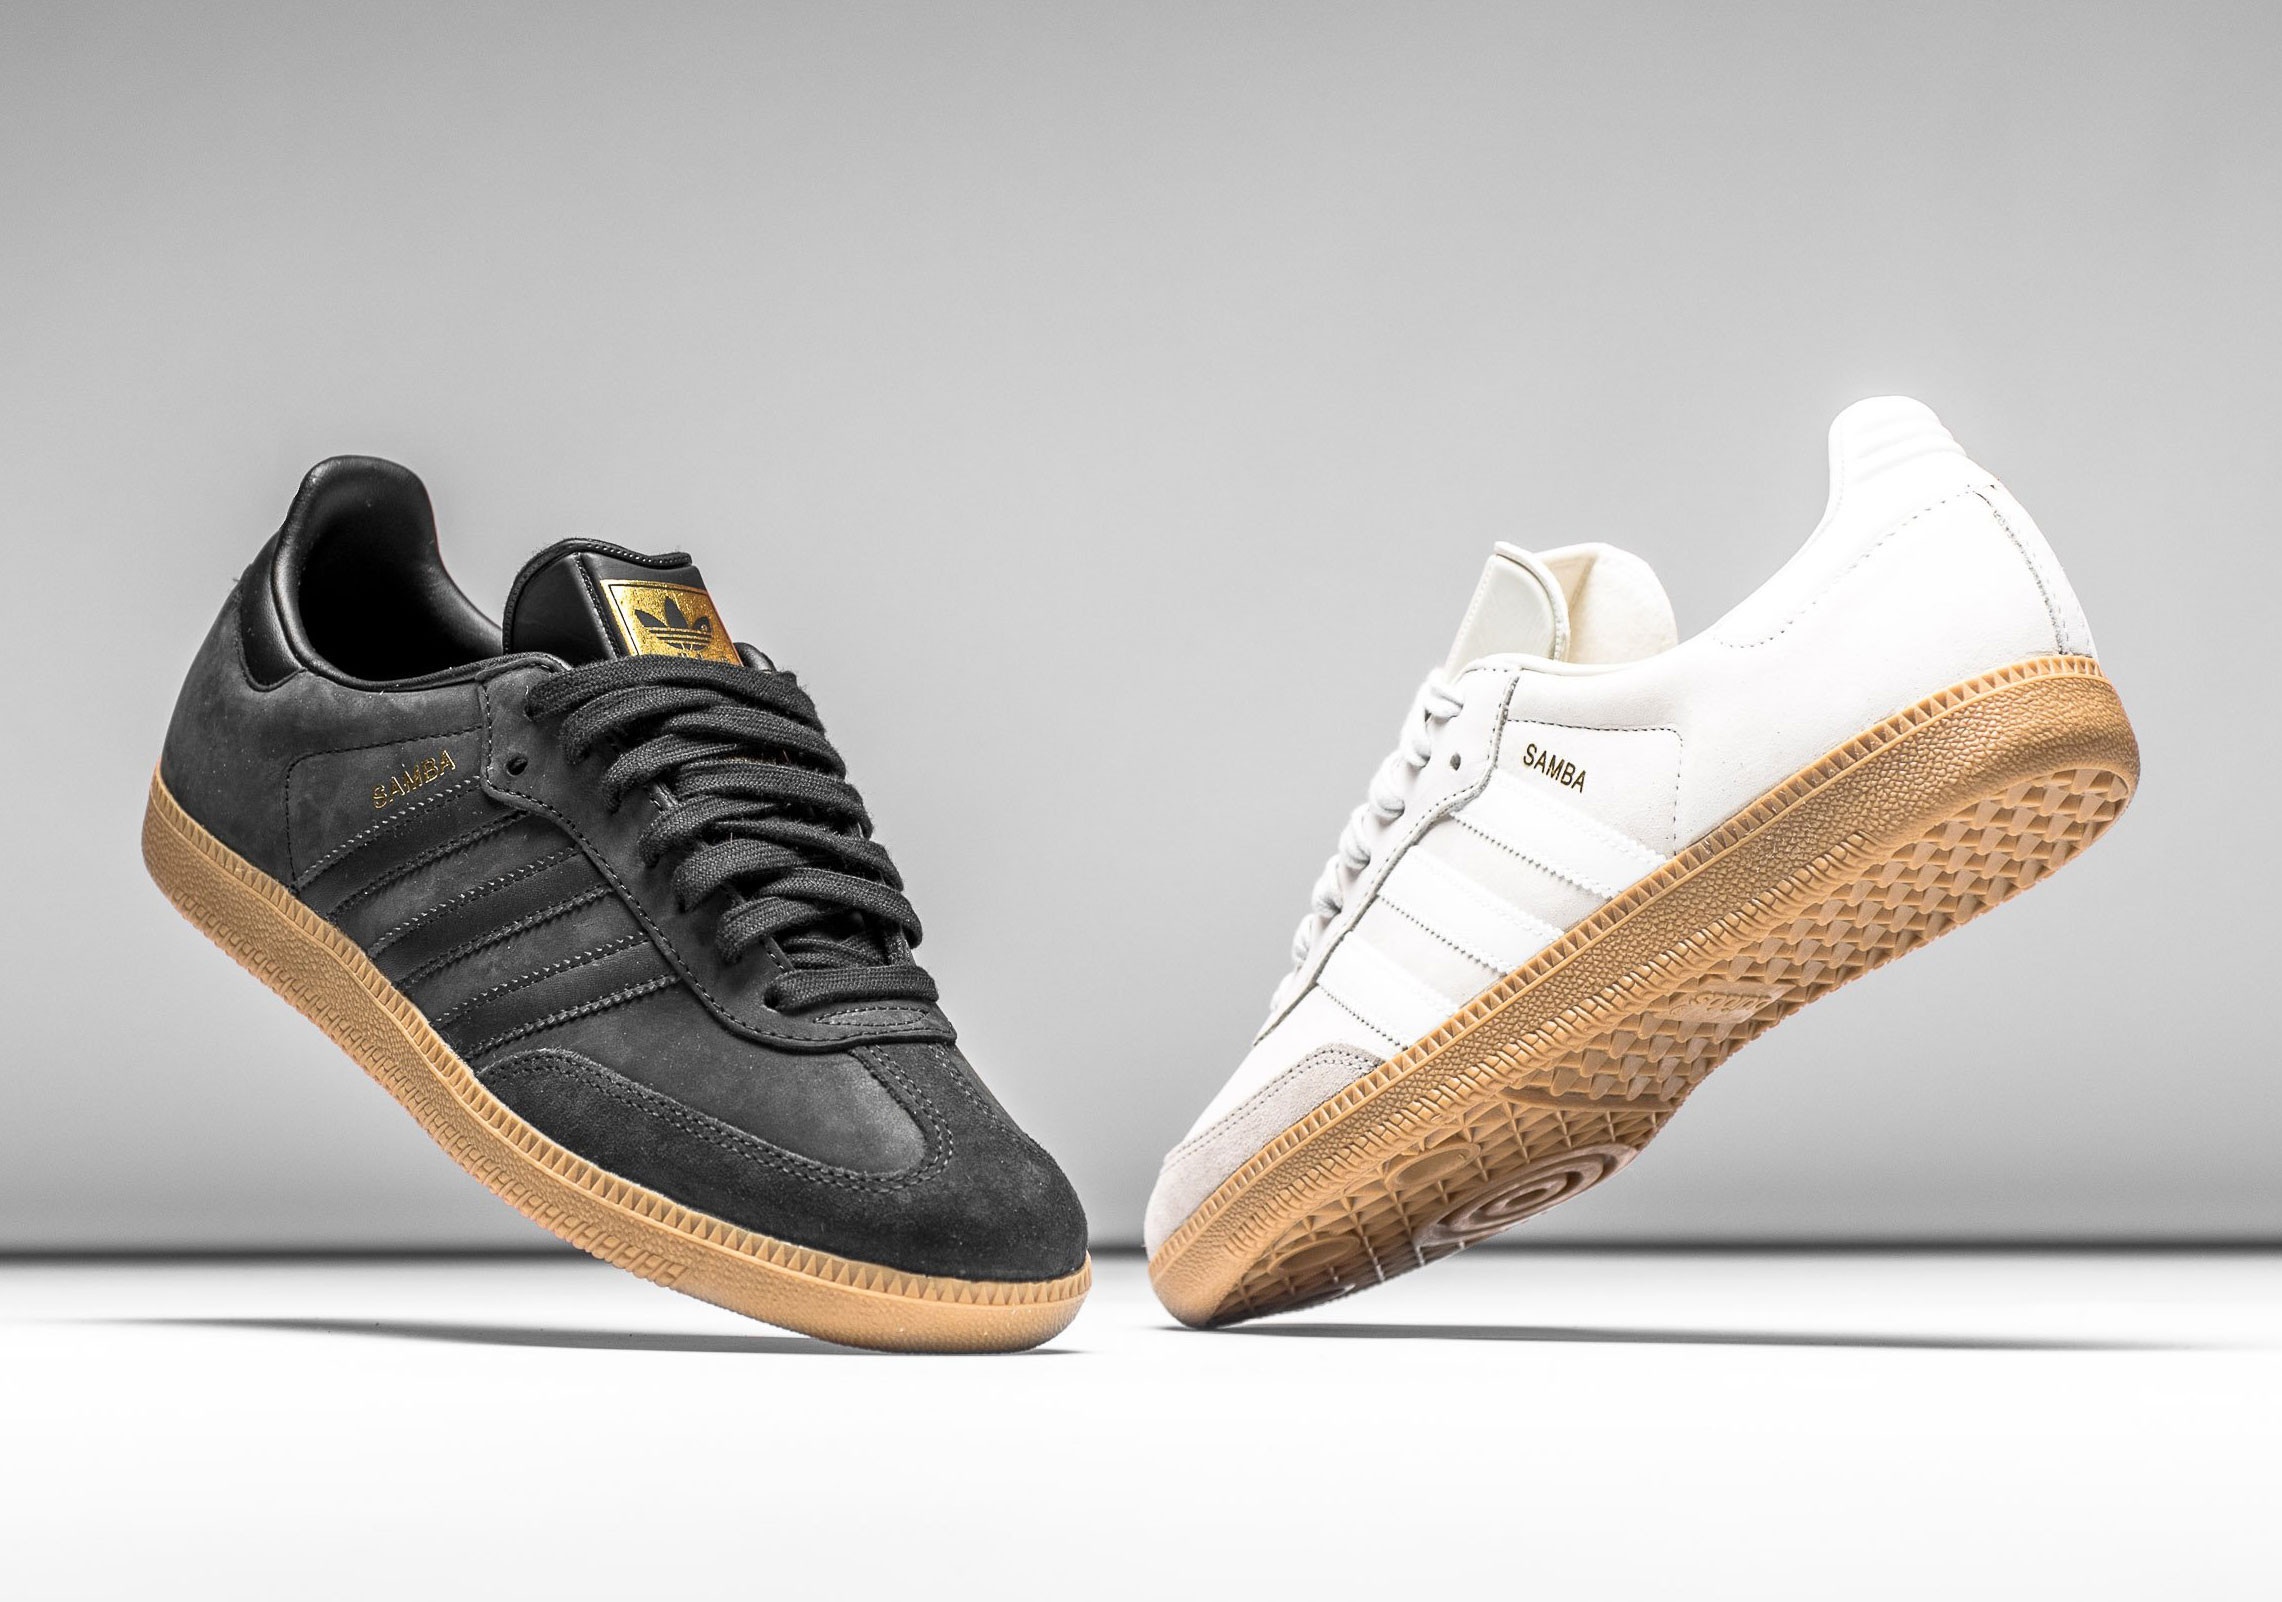 adidas Originals Brings Back The Samba OG In Two Gum-Soled Options